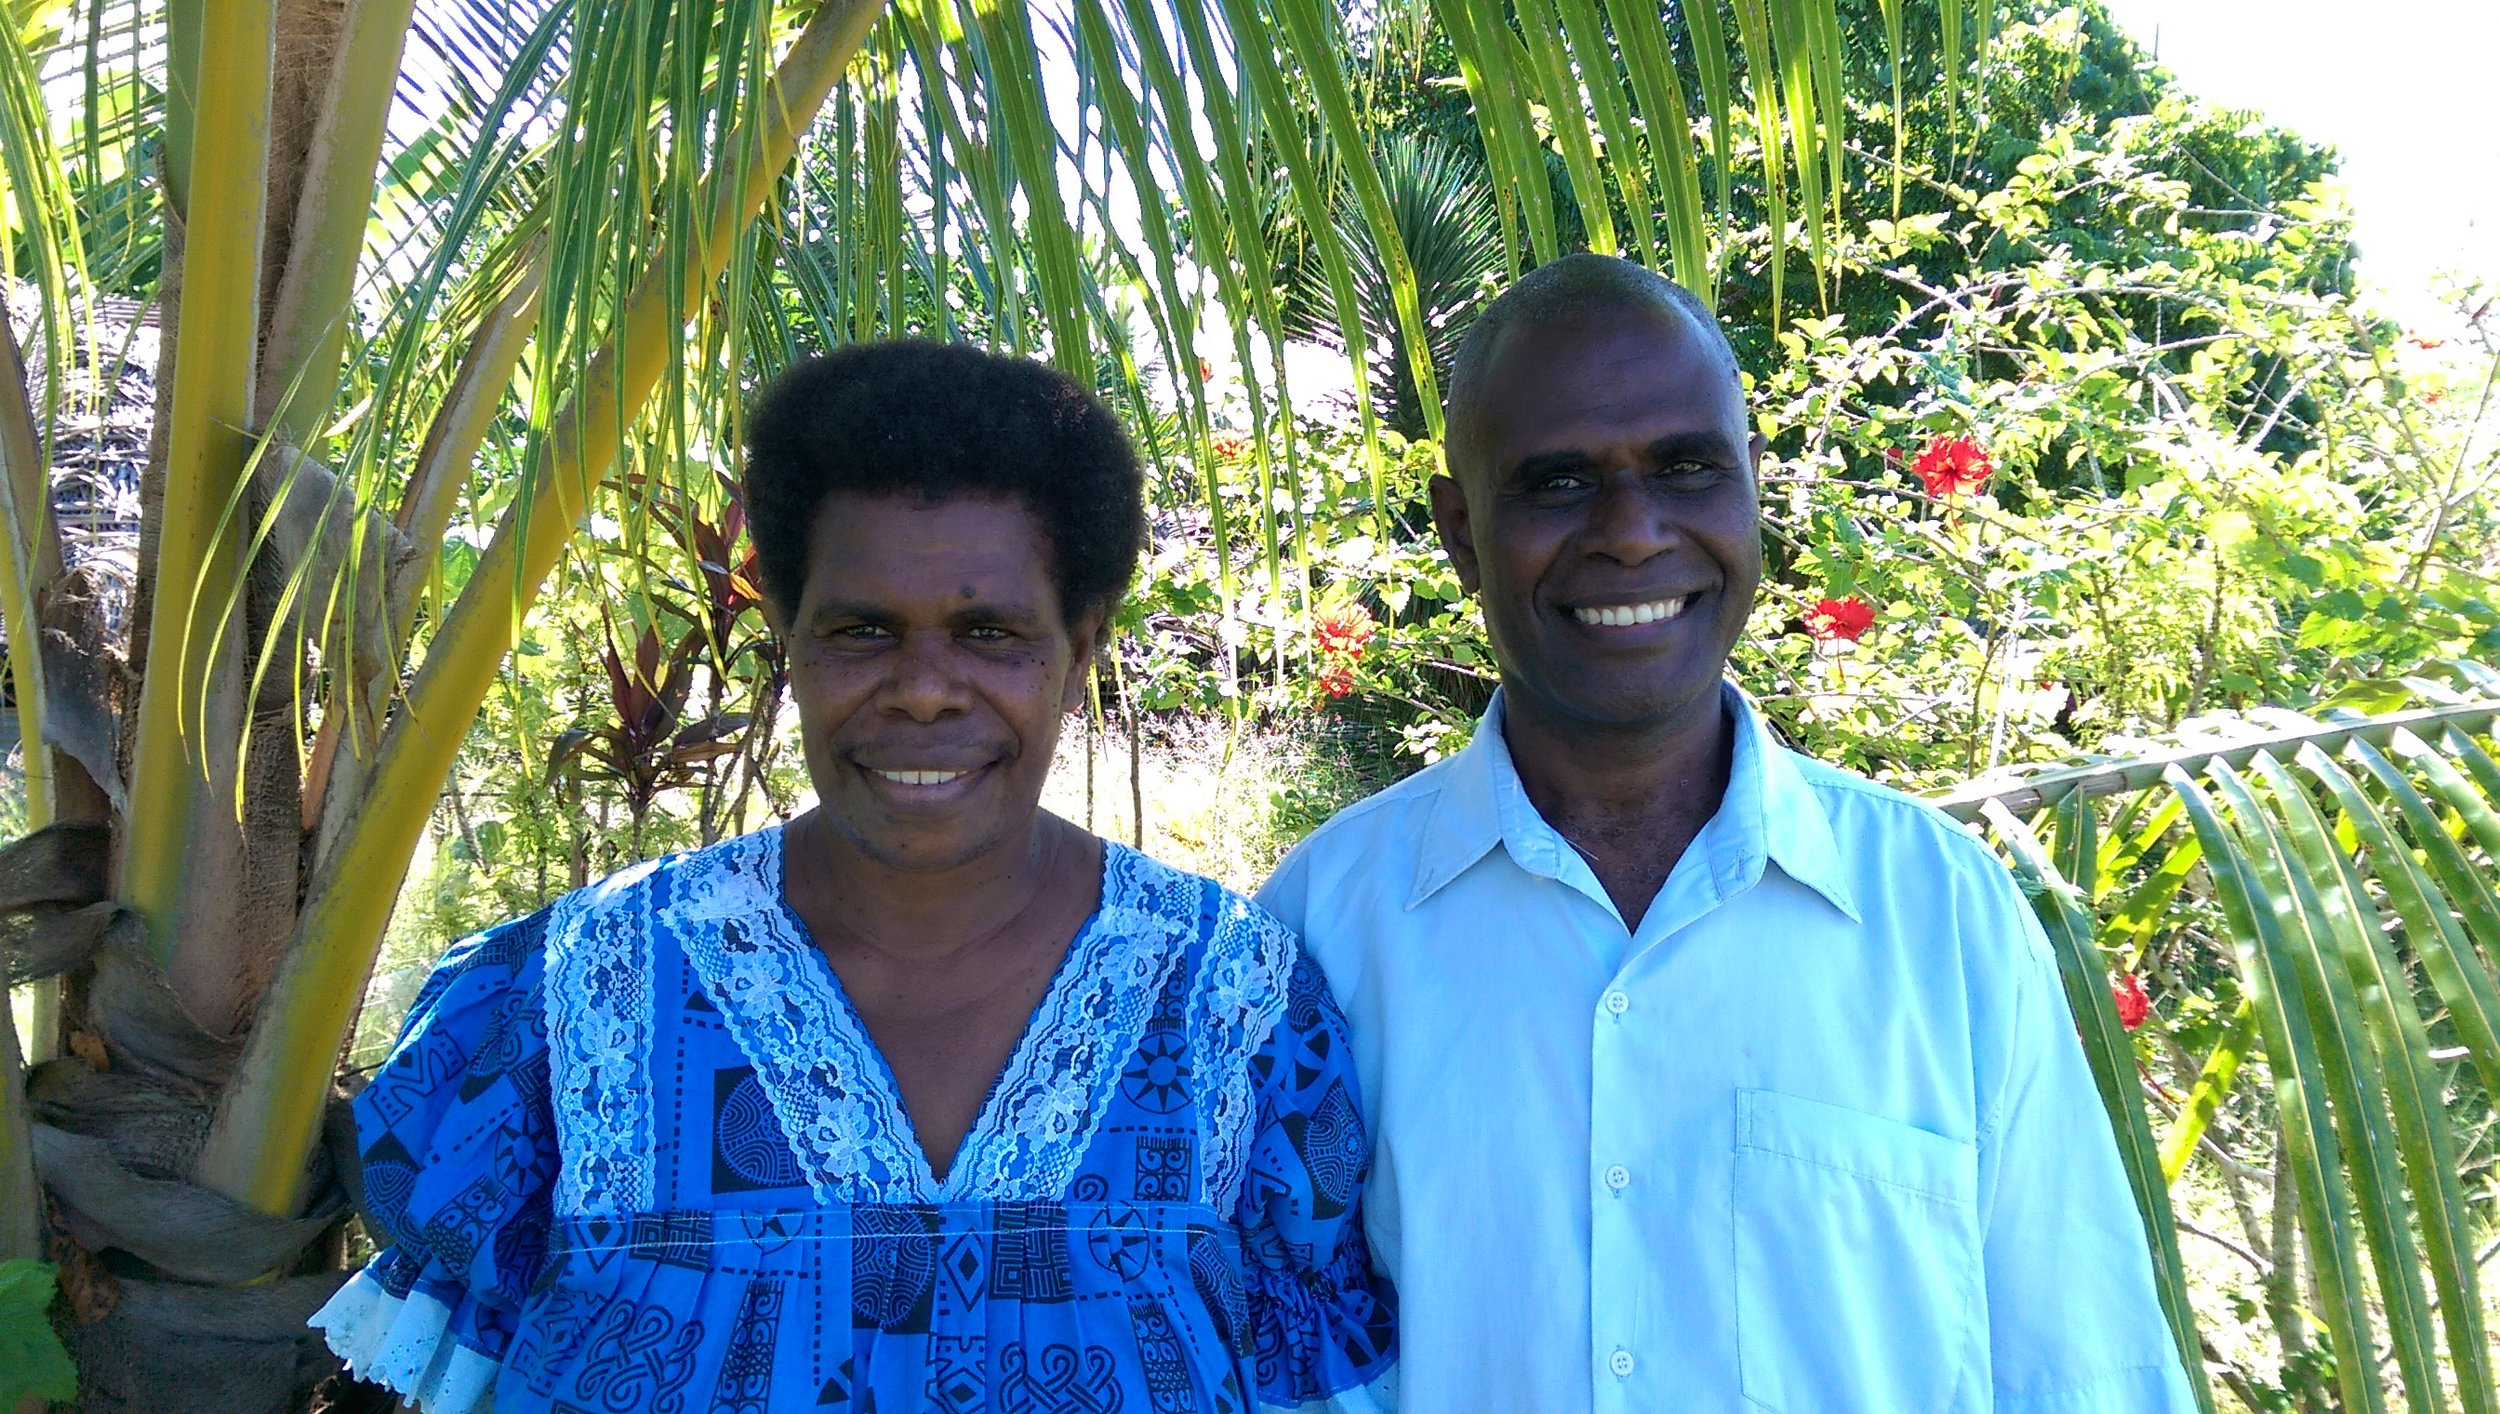 SHEM TAMARA - Shem Tamara is the Academic Dean and Lecturer in New Testament at Talua Theological Training Institure on the south coast of Espiritu Santo. He is an ordained minister in the Presbyterian Church of Vanuatu and from Nguna Island, north Efate.